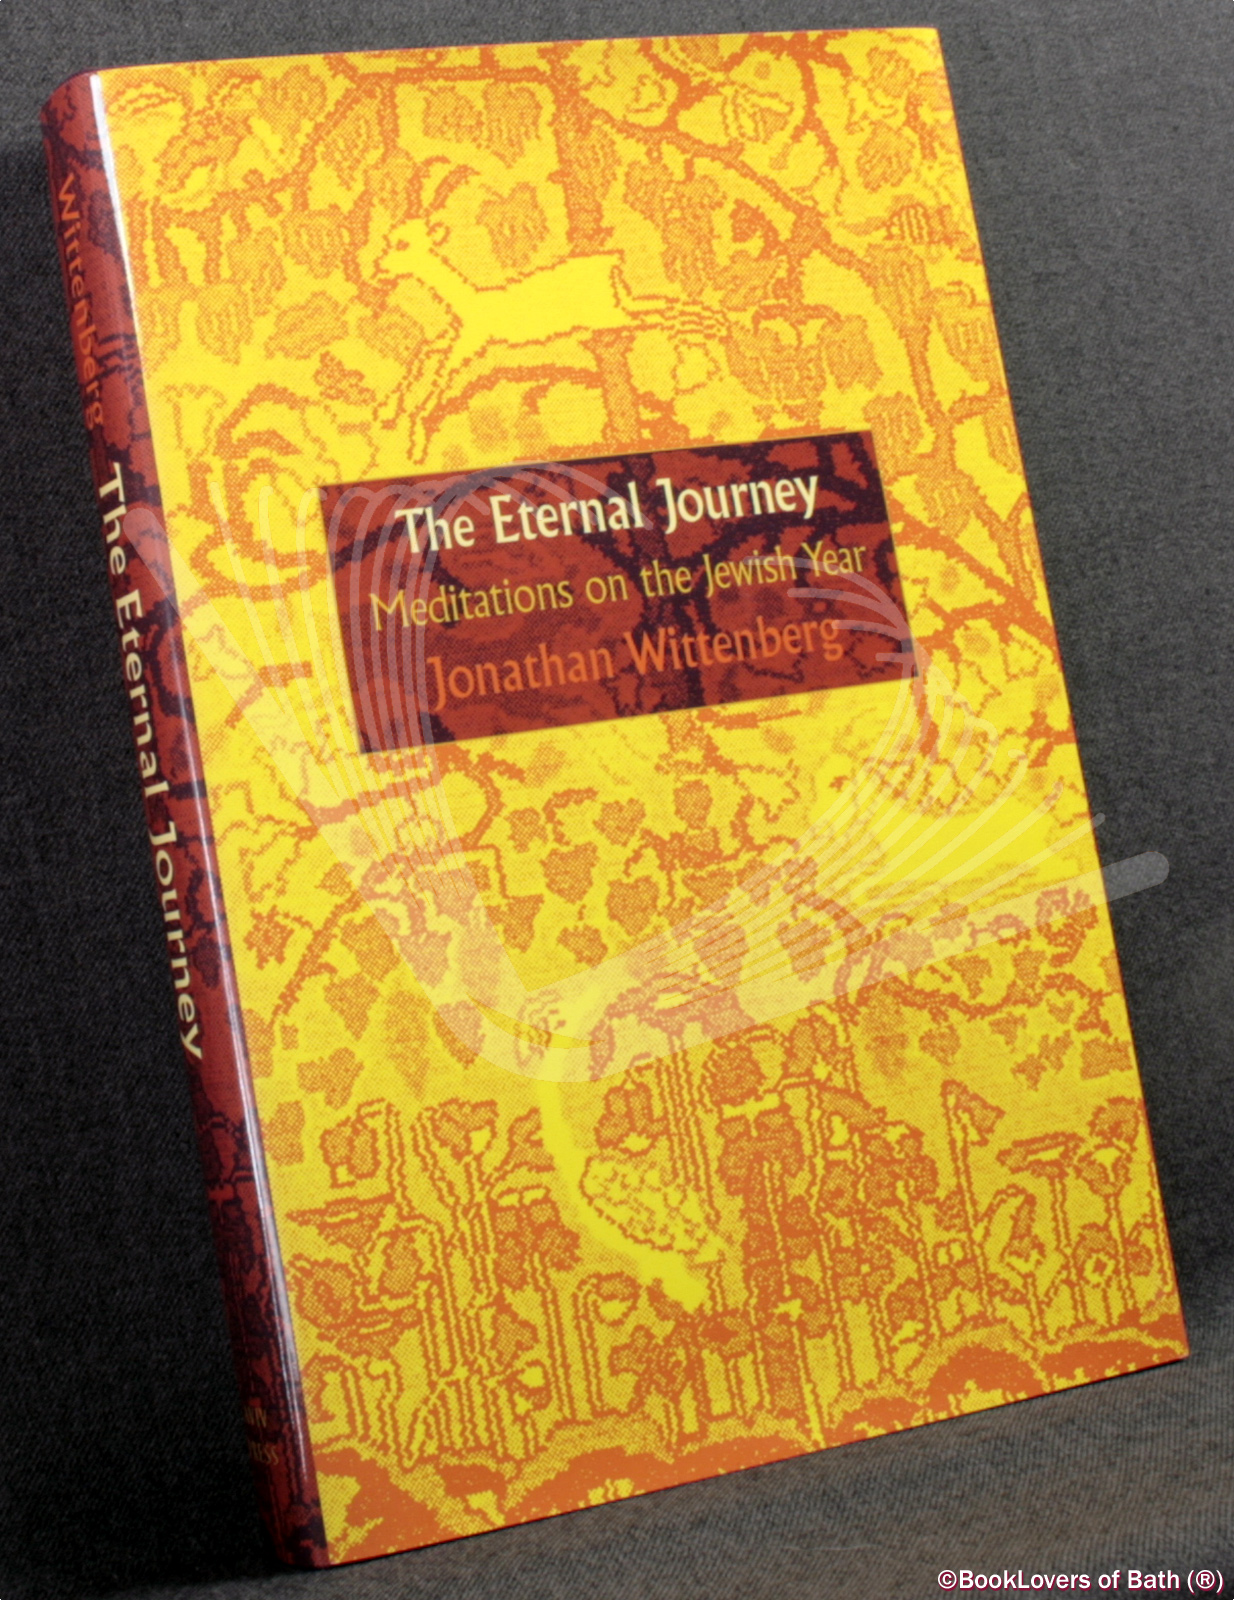 The Eternal Journey: Meditations on the Jewish Year - Jonathan Wittenberg